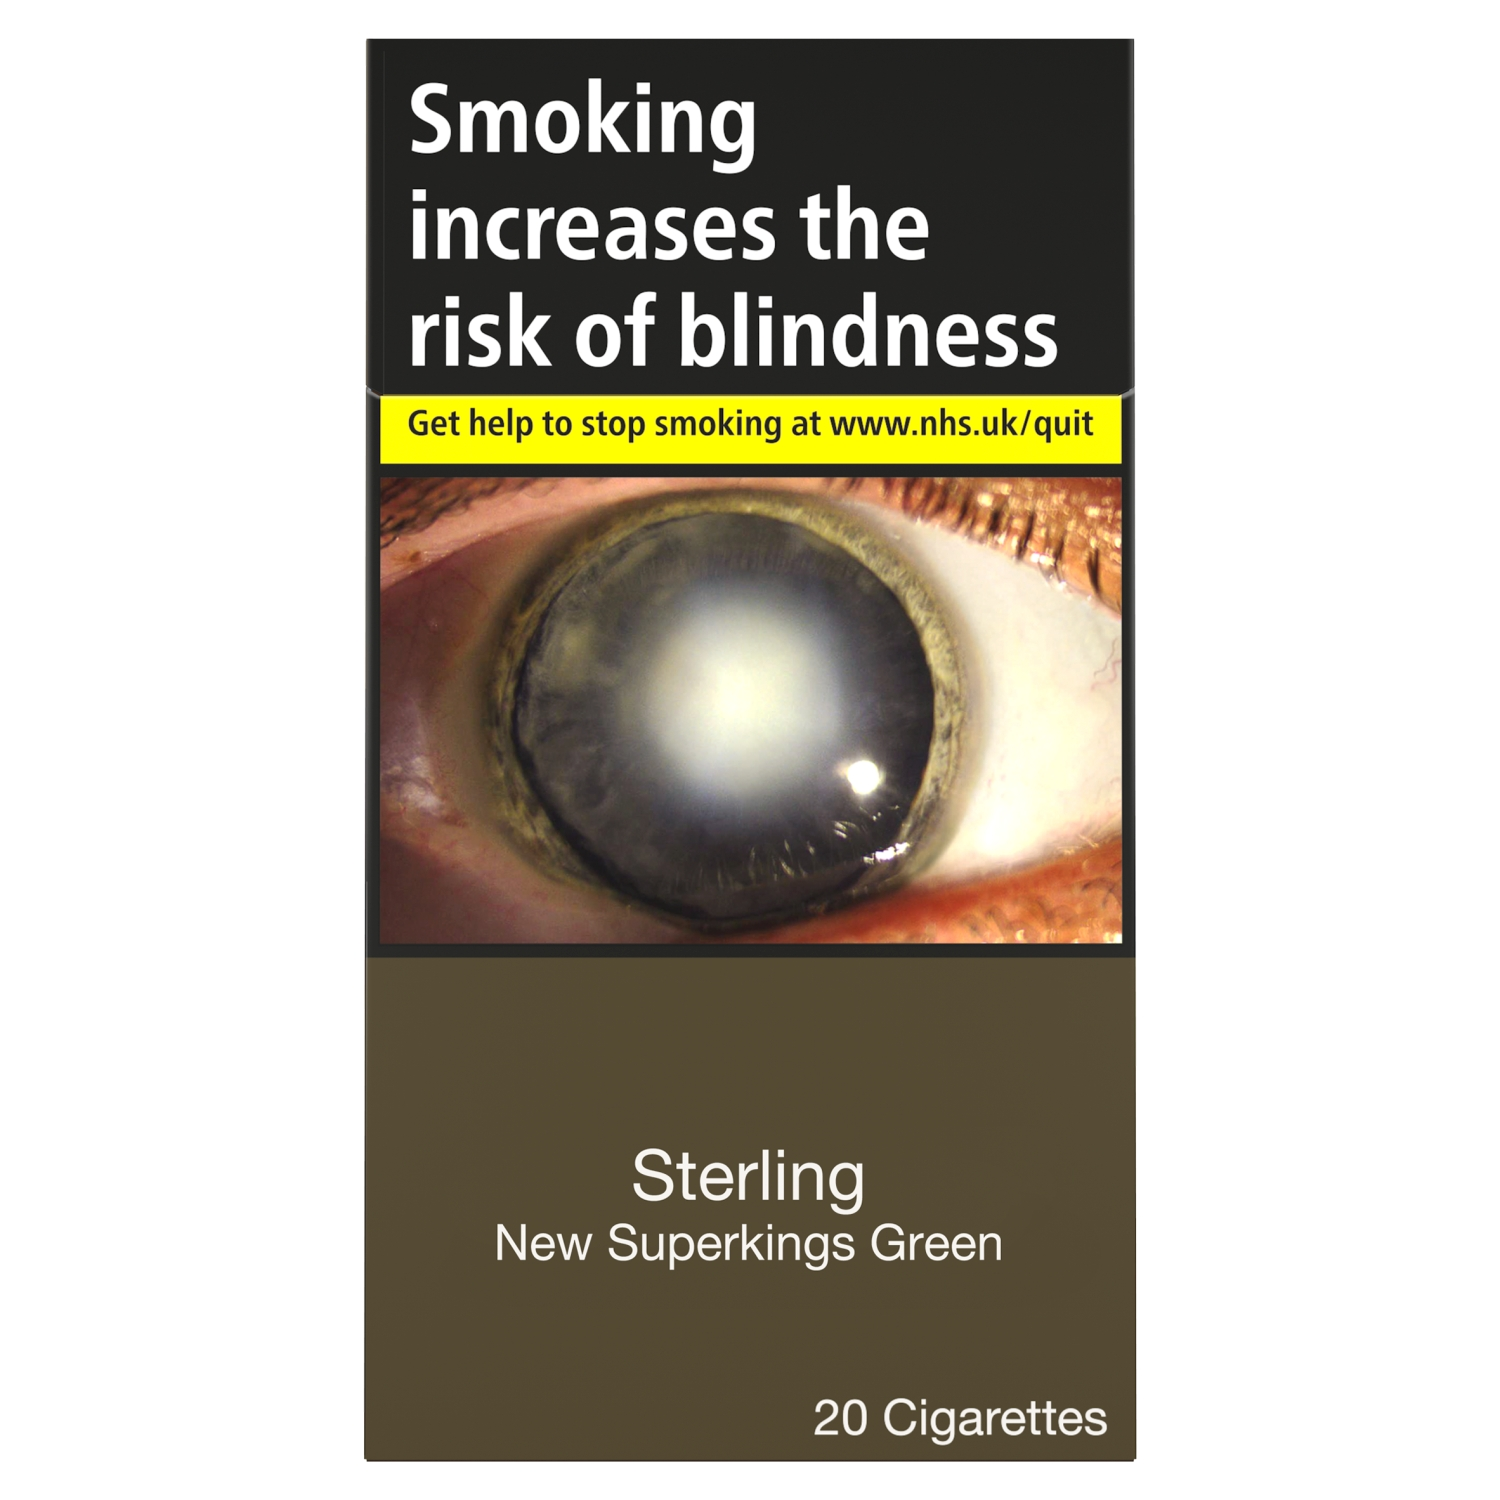 Sterling New Superkings Green 20 Cigarettes